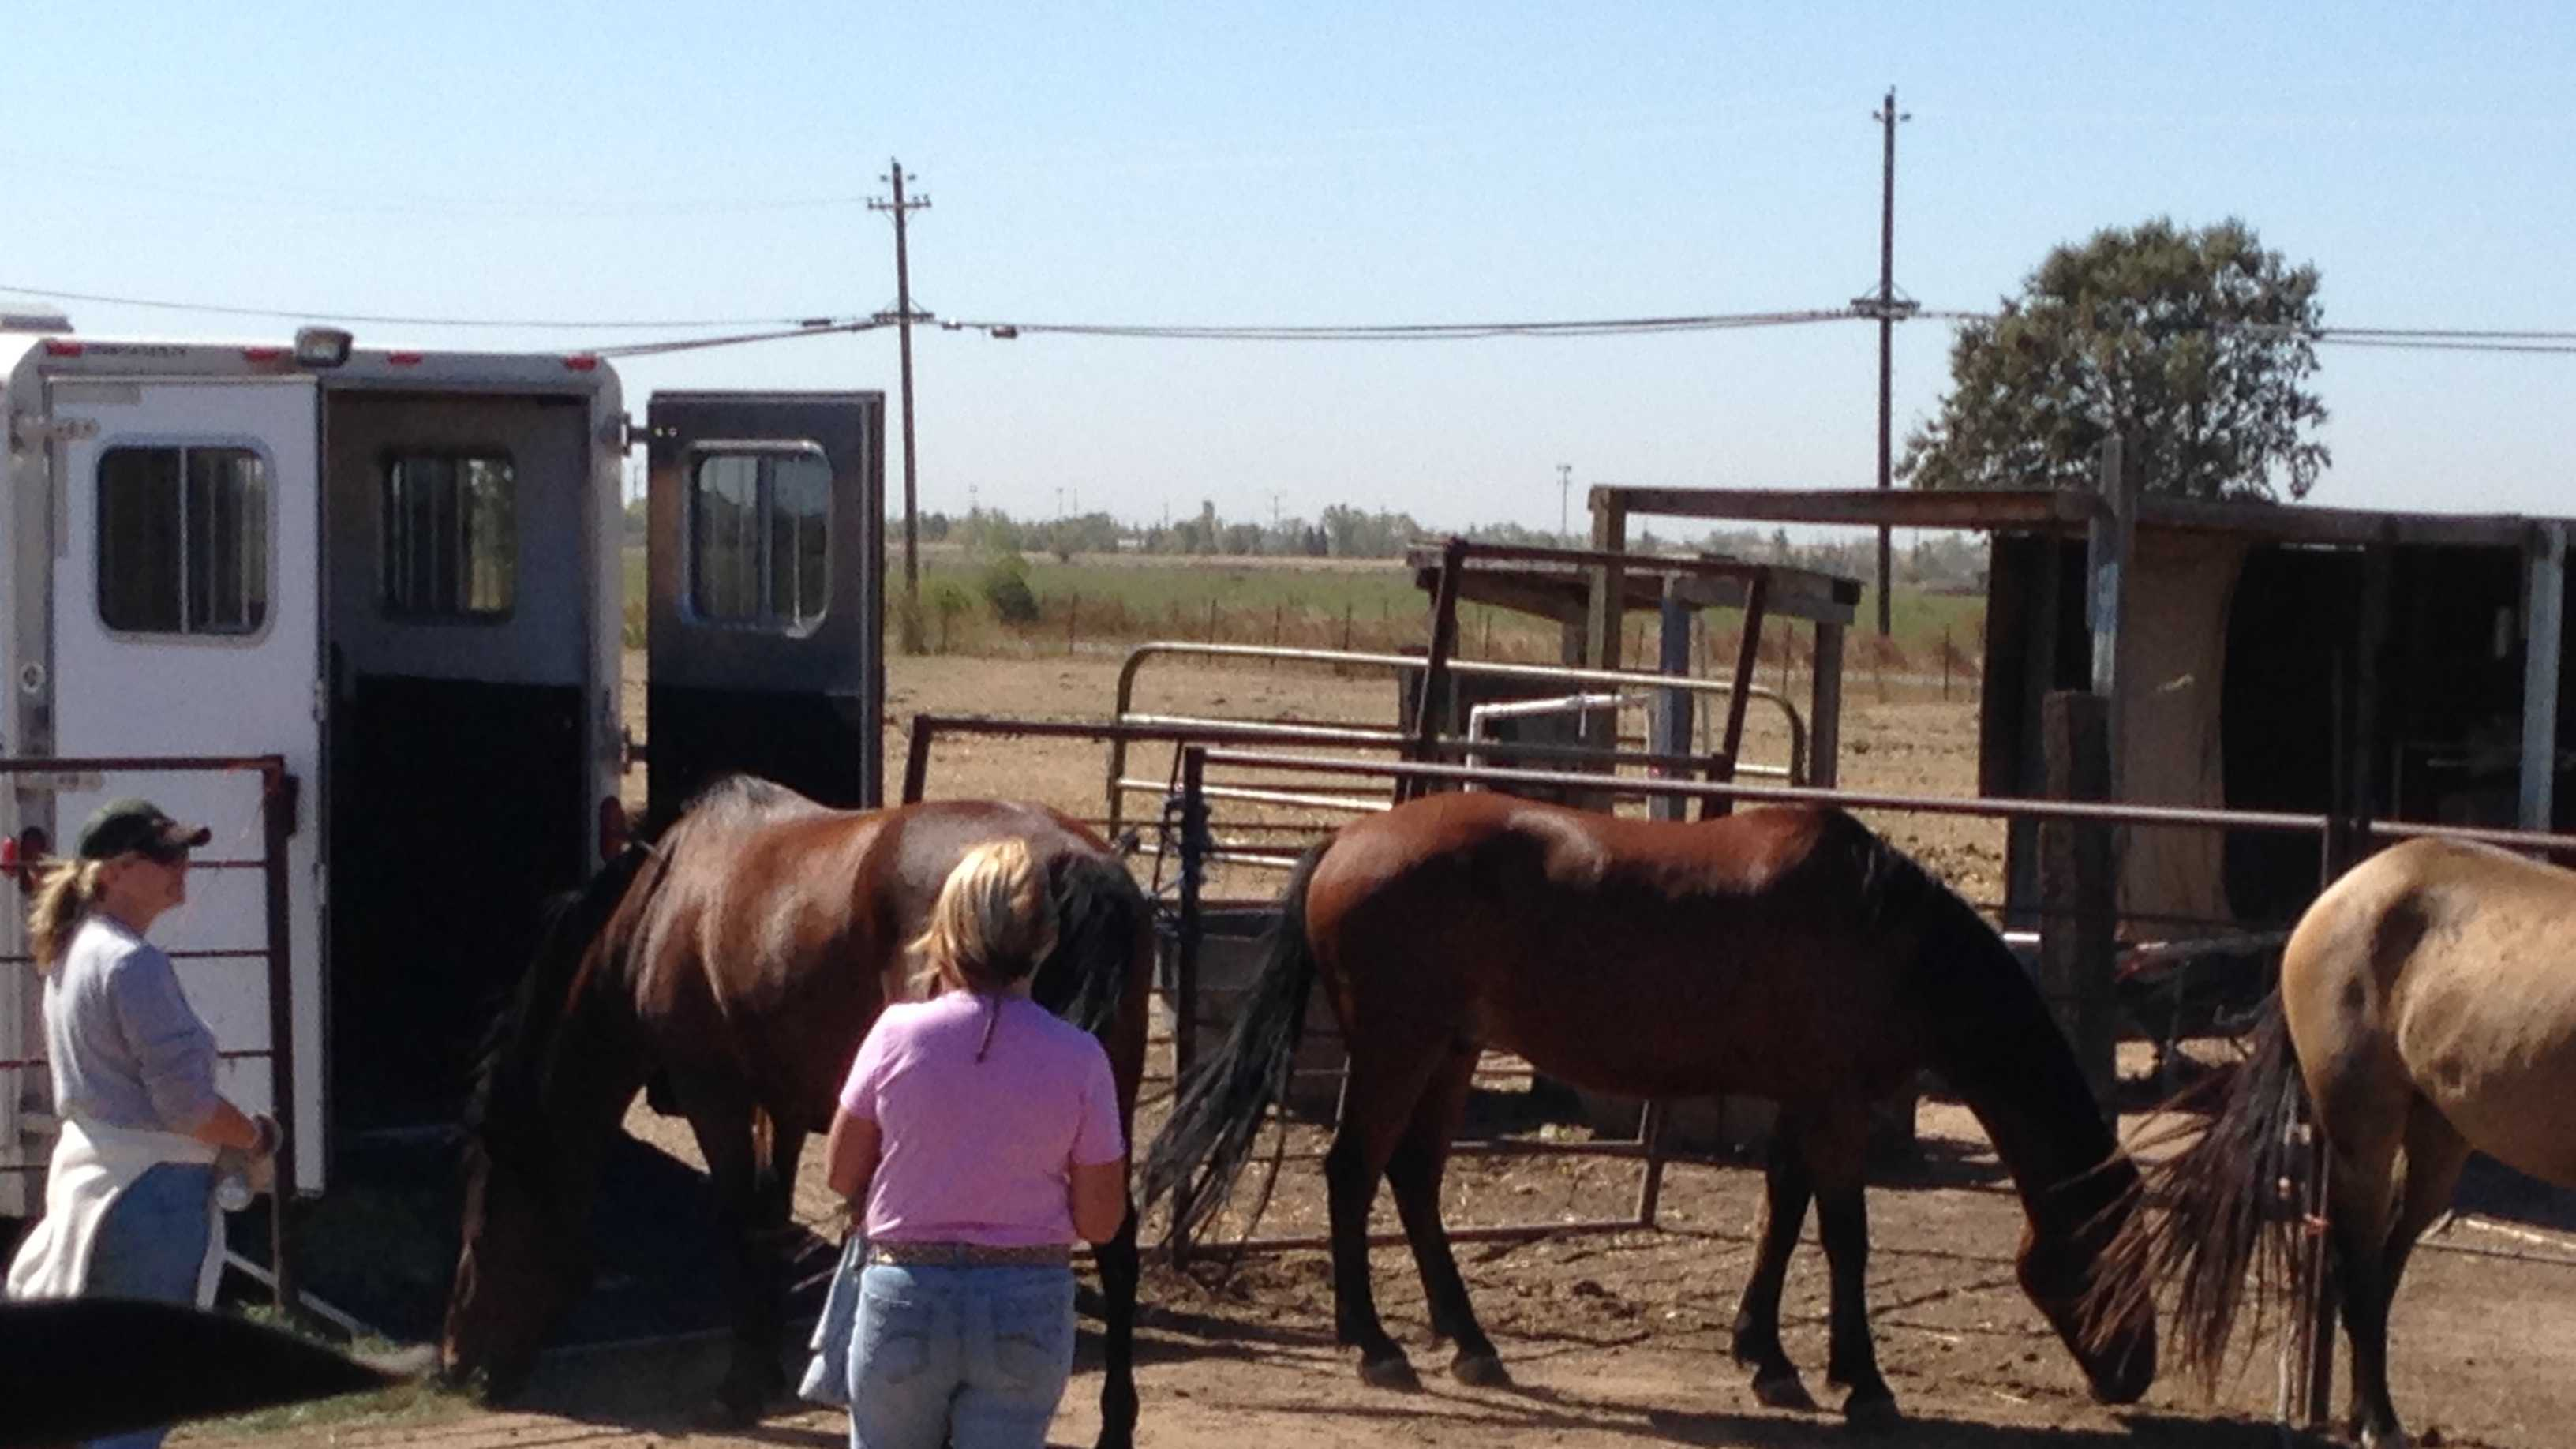 Members of the Humane Society of the Sierra Foothills rounded up horses that they say were neglected and underfed at a ranch in Lincoln.